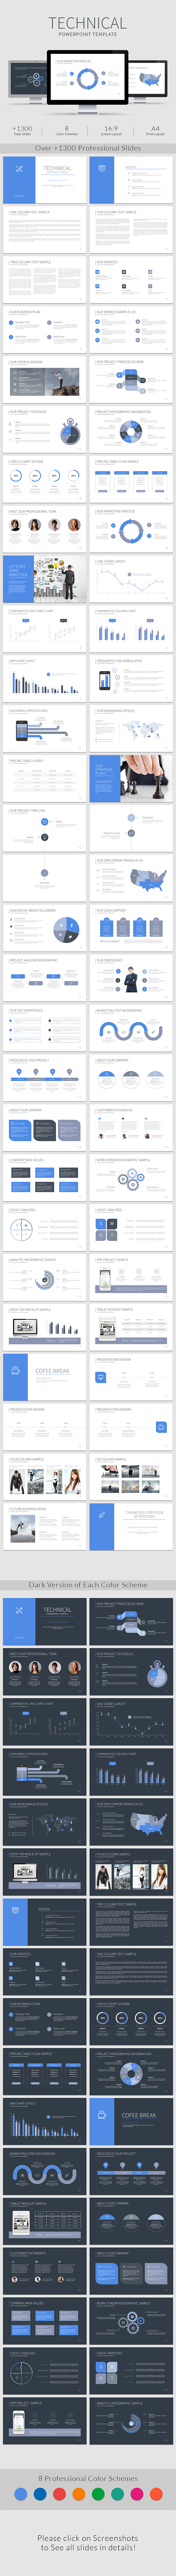 Technical PowerPoint Template - Business PowerPoint Templates